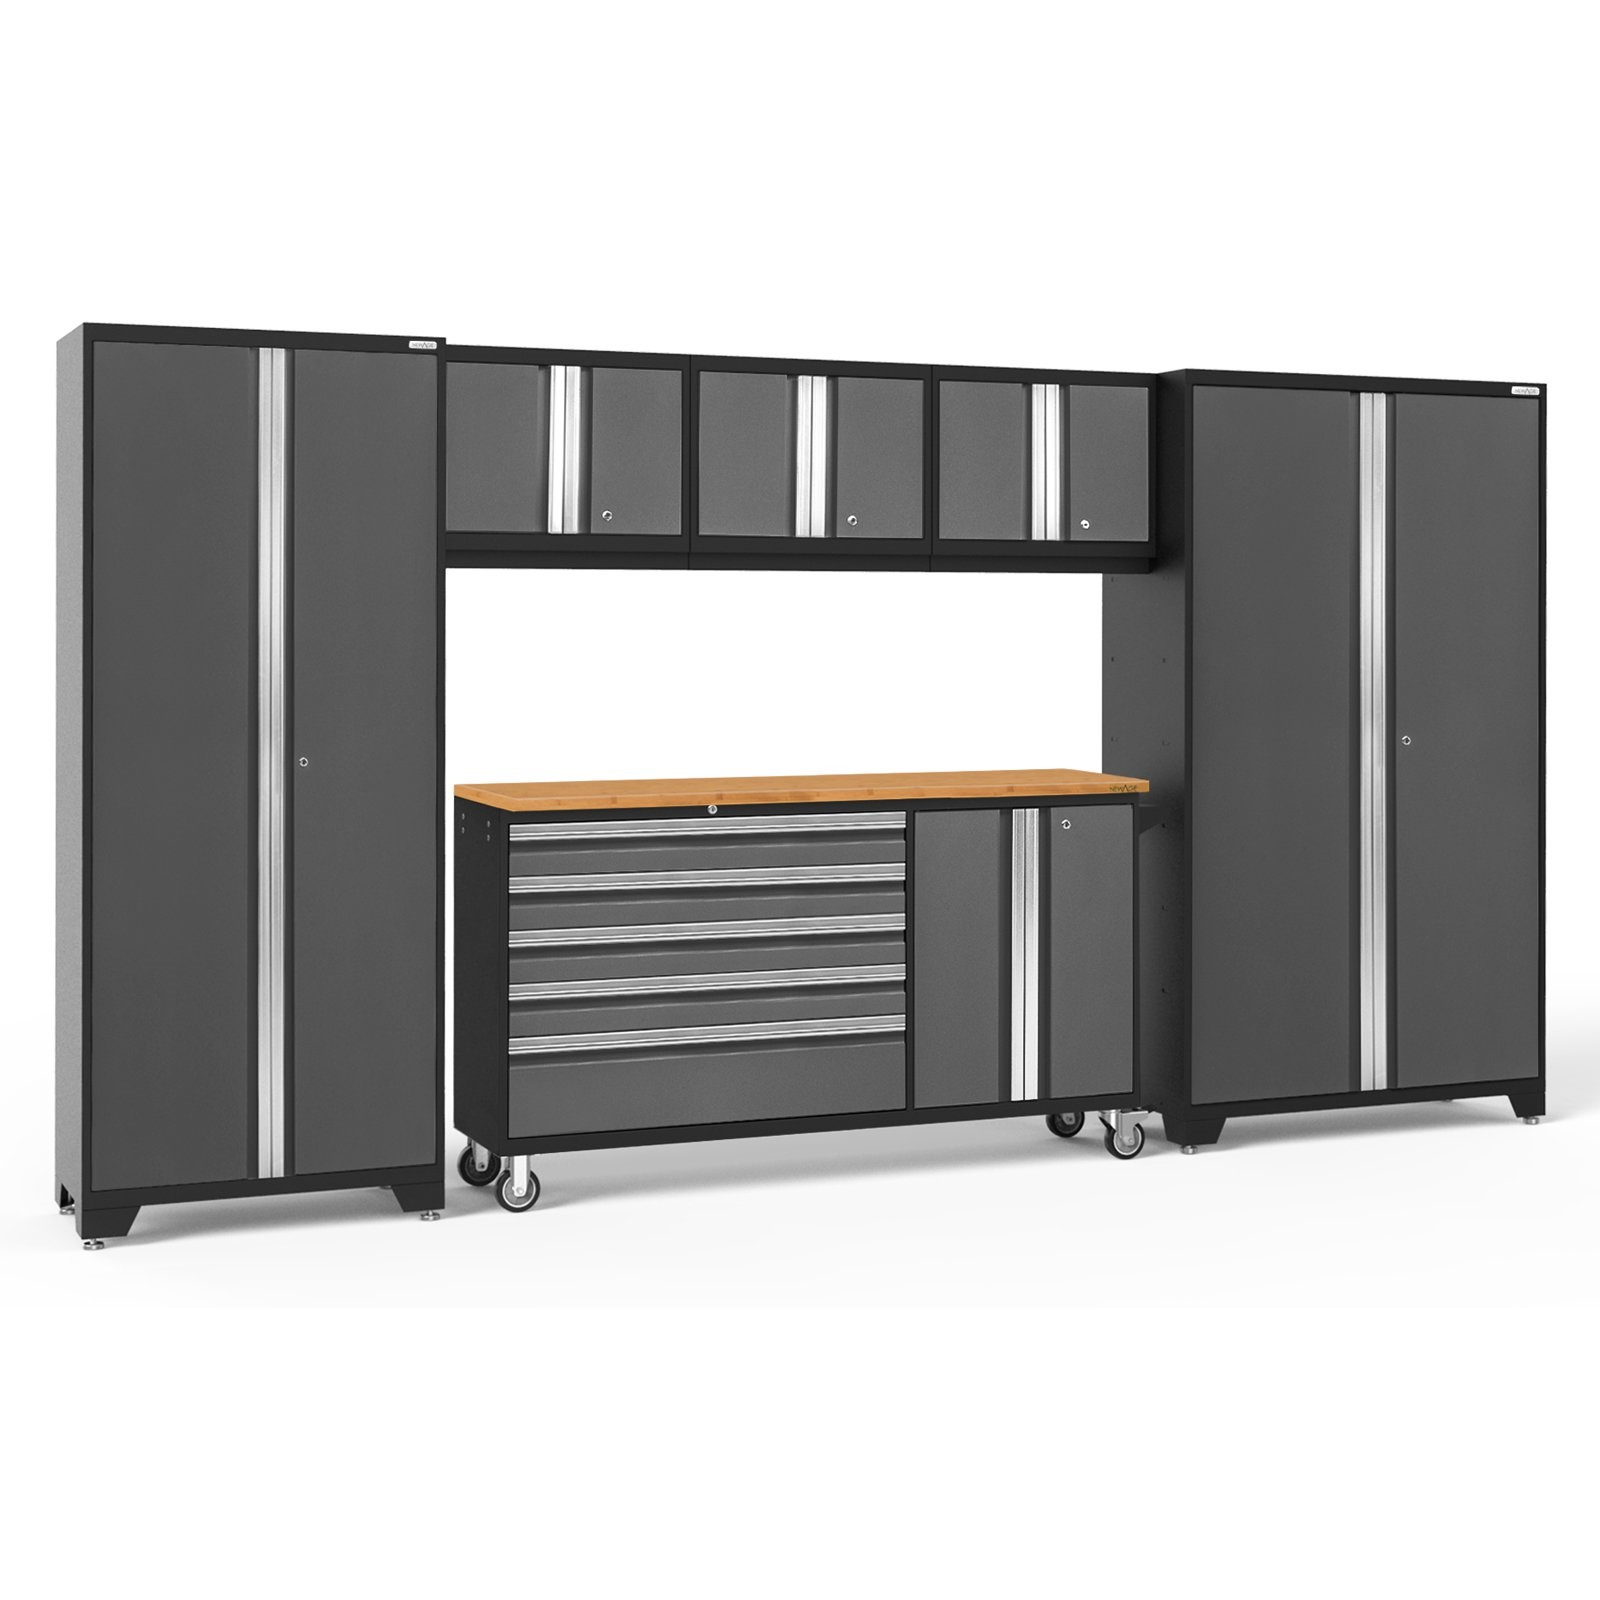 NewAge Products Bold 3.0 6 Piece Garage Cabinet System with 7 Shelves